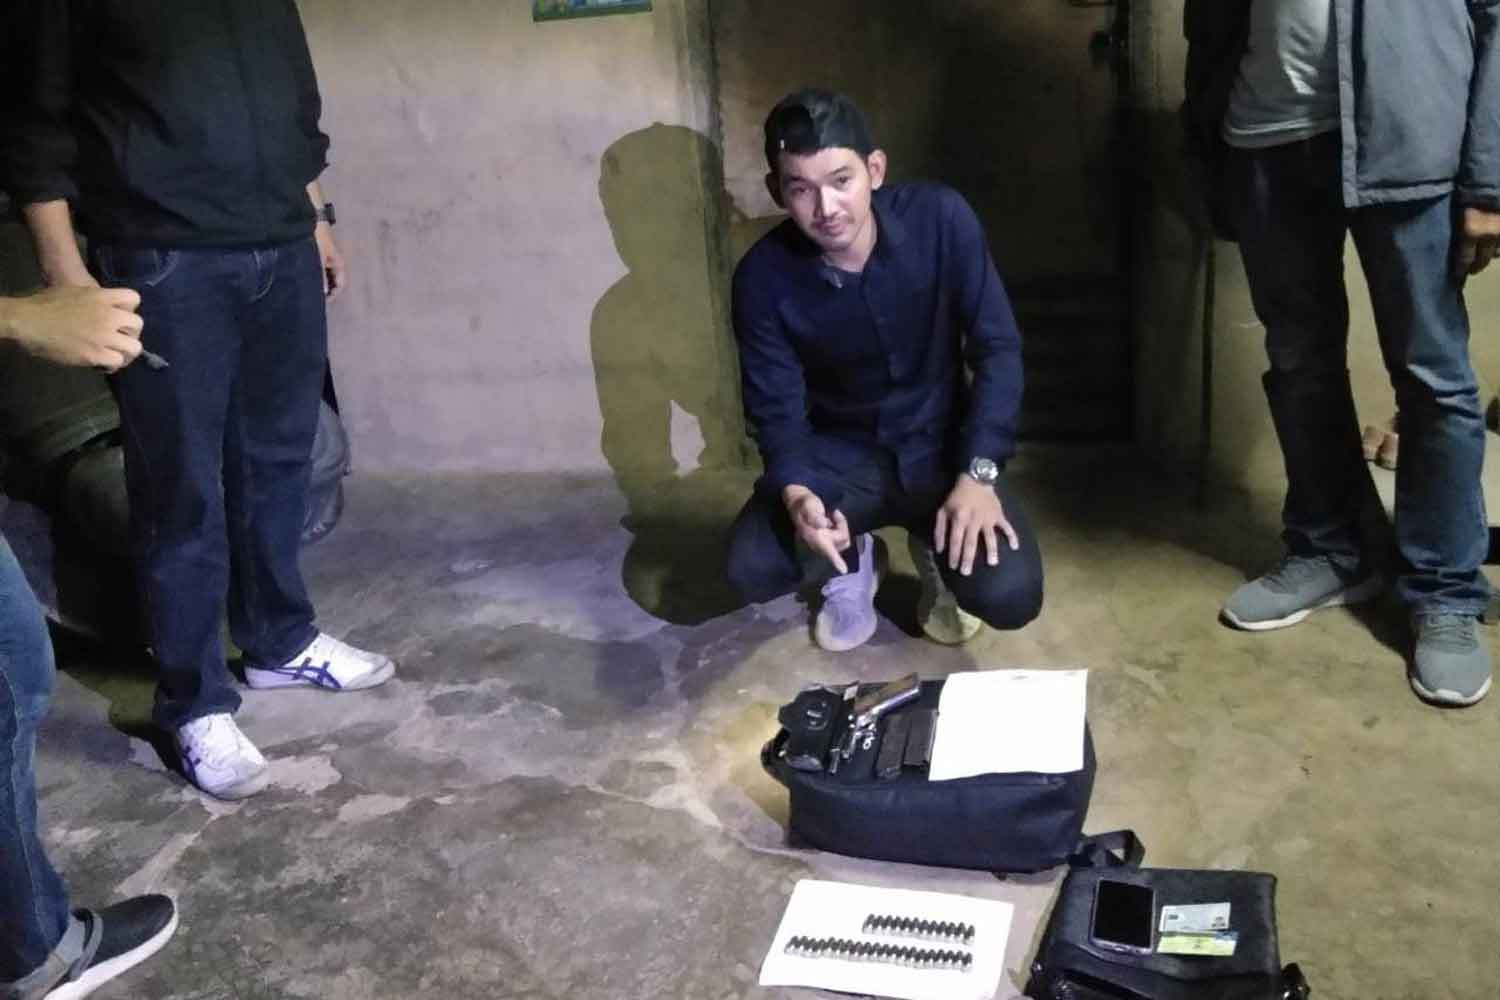 Danusorn Numcharoen, the suspect in the murder of his ex-wife at a cosmetic clinic in a shopping mall near Victory Monument on Tuesday, after his arrest by police in Phetchaburi's Kaeng Krachan district on Wednesday morning. (Photo supplied)